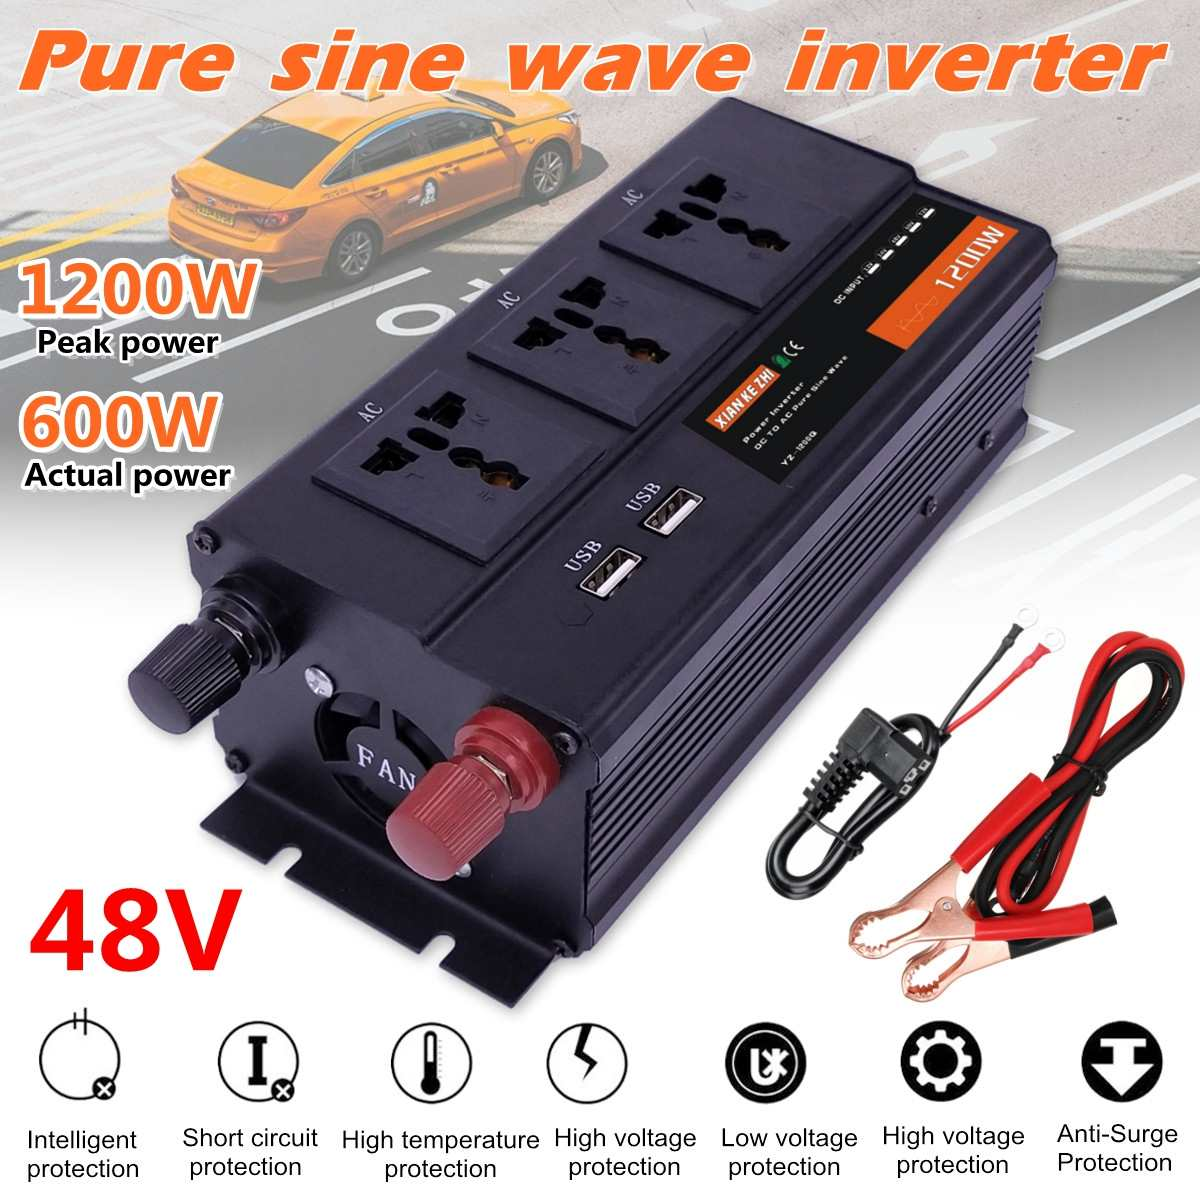 1200W Peaks Power Inverter DC 48V To AC 220V 50Hz Pure Sine Wave Inverter LED Display W/ 3 Socket 2 USB1200W Peaks Power Inverter DC 48V To AC 220V 50Hz Pure Sine Wave Inverter LED Display W/ 3 Socket 2 USB